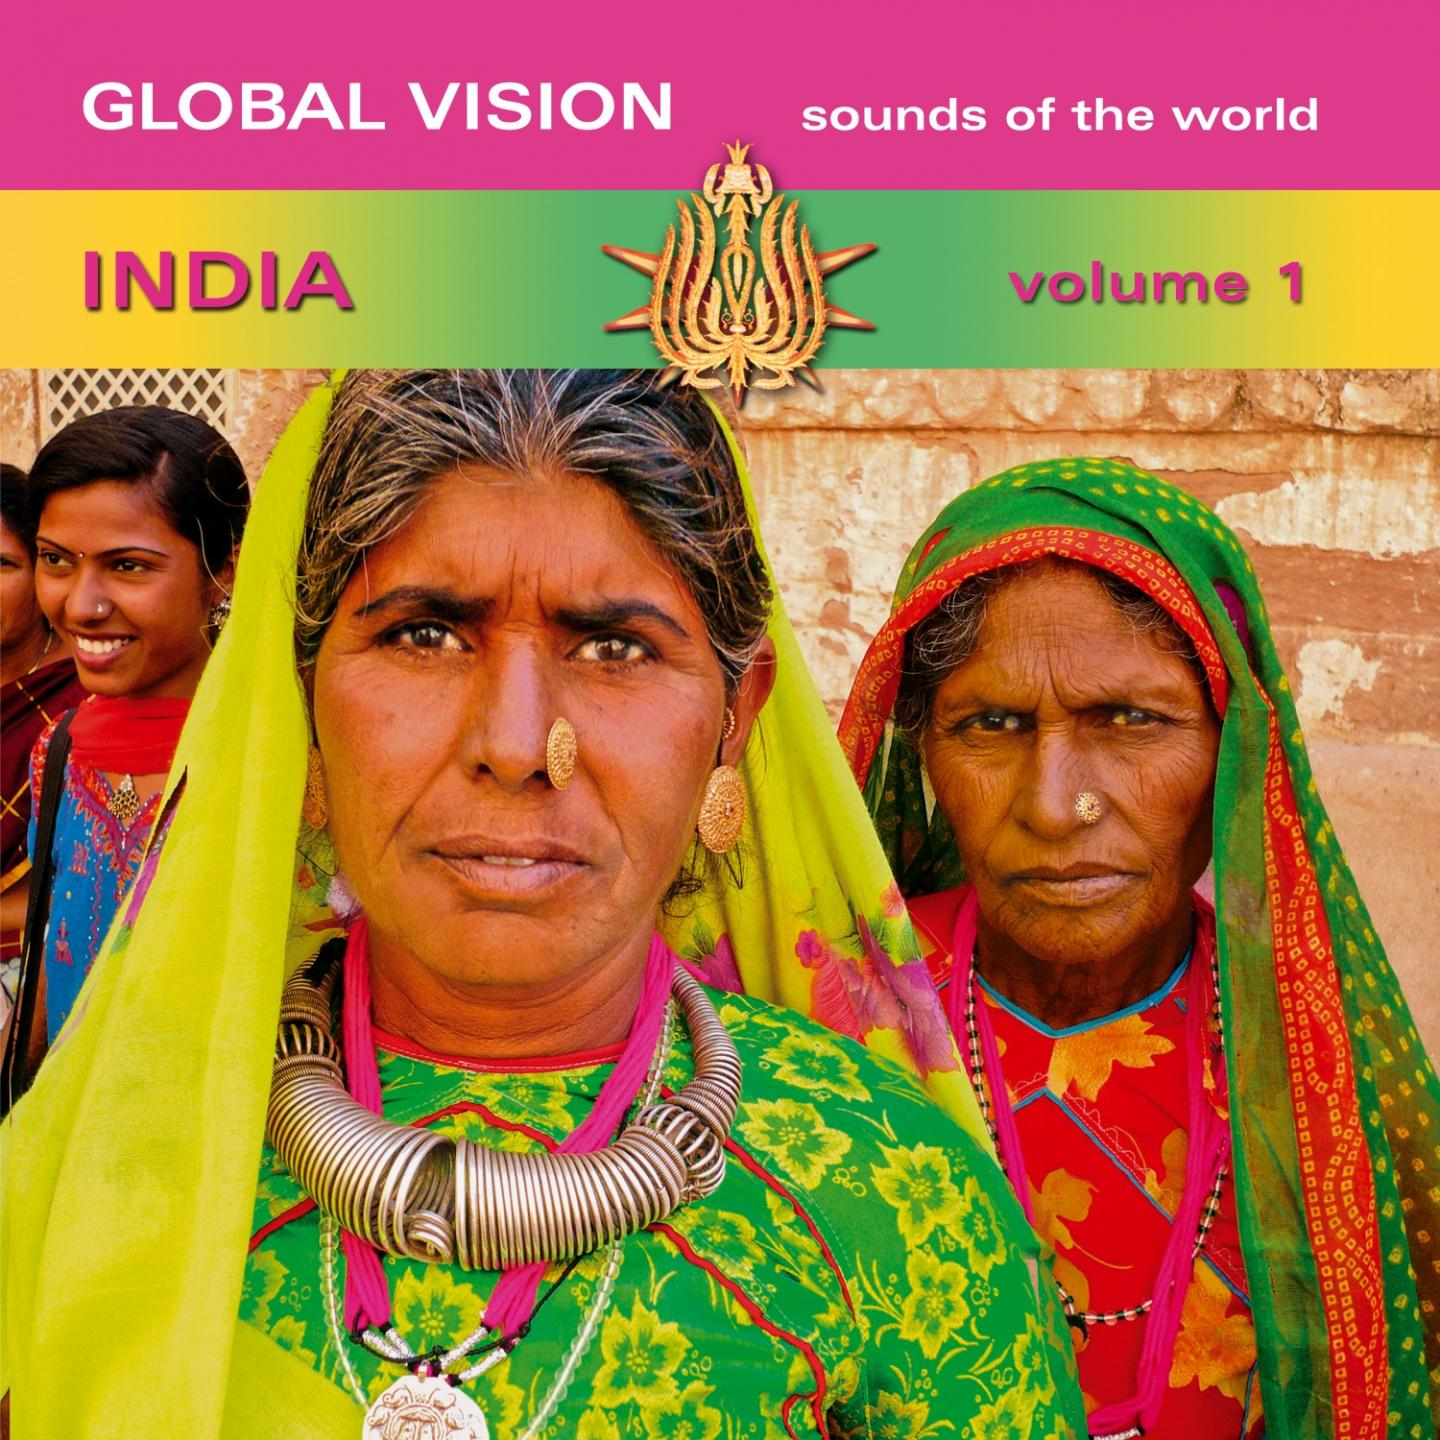 my visions for india World vision is an ngo working to create change in the lives of children living in poverty it encourages child sponsorship, orphan sponsorship, helping needy children, charity, donations, child adoption and helping disabled children.